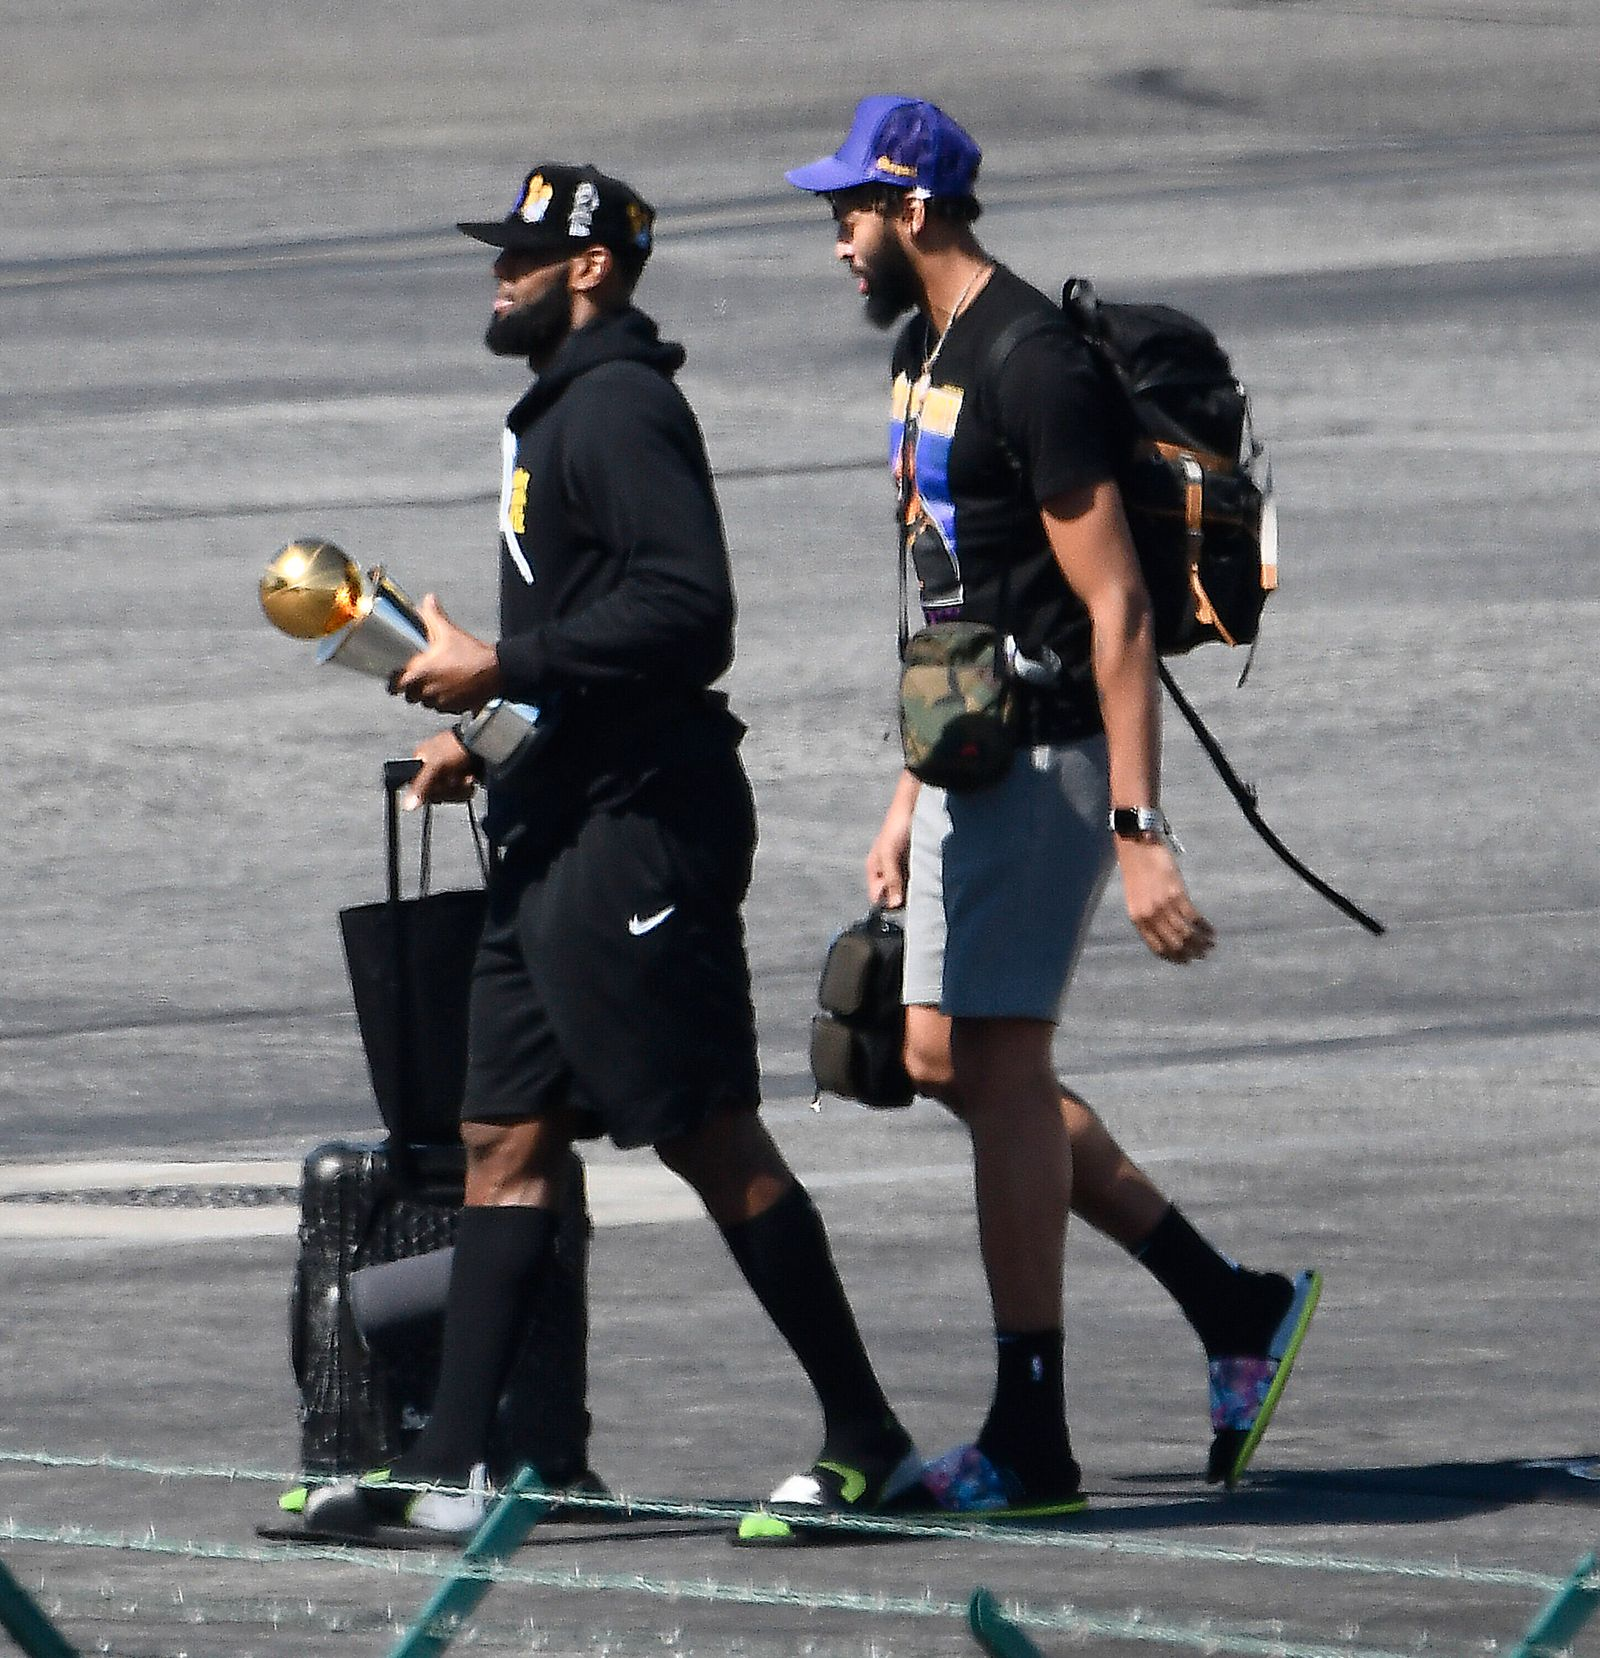 Los Angeles Laker LaBron James walks off with the winning trophy in hand as the Lakers return home for winning the NBA,